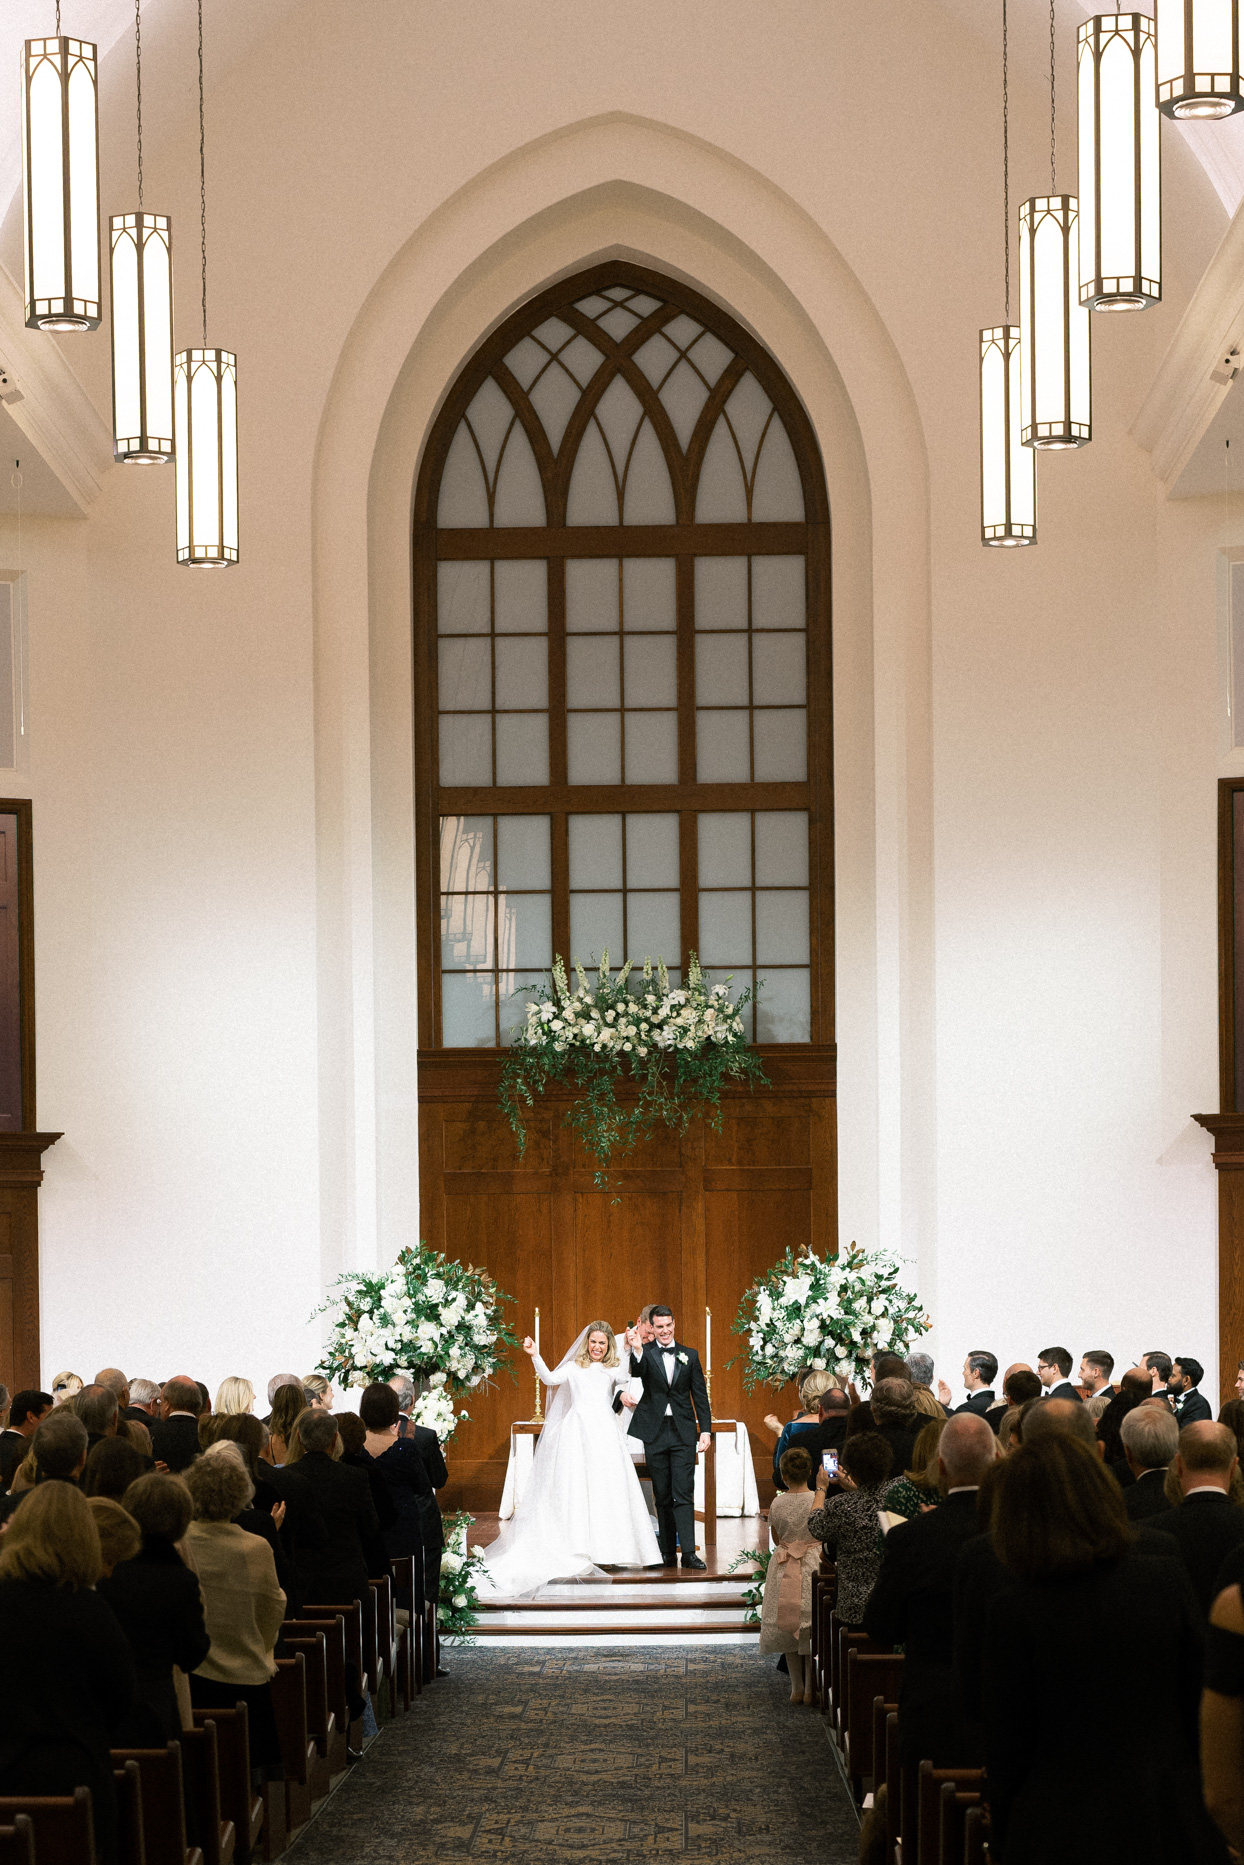 bride and groom celebrating at indoor church wedding